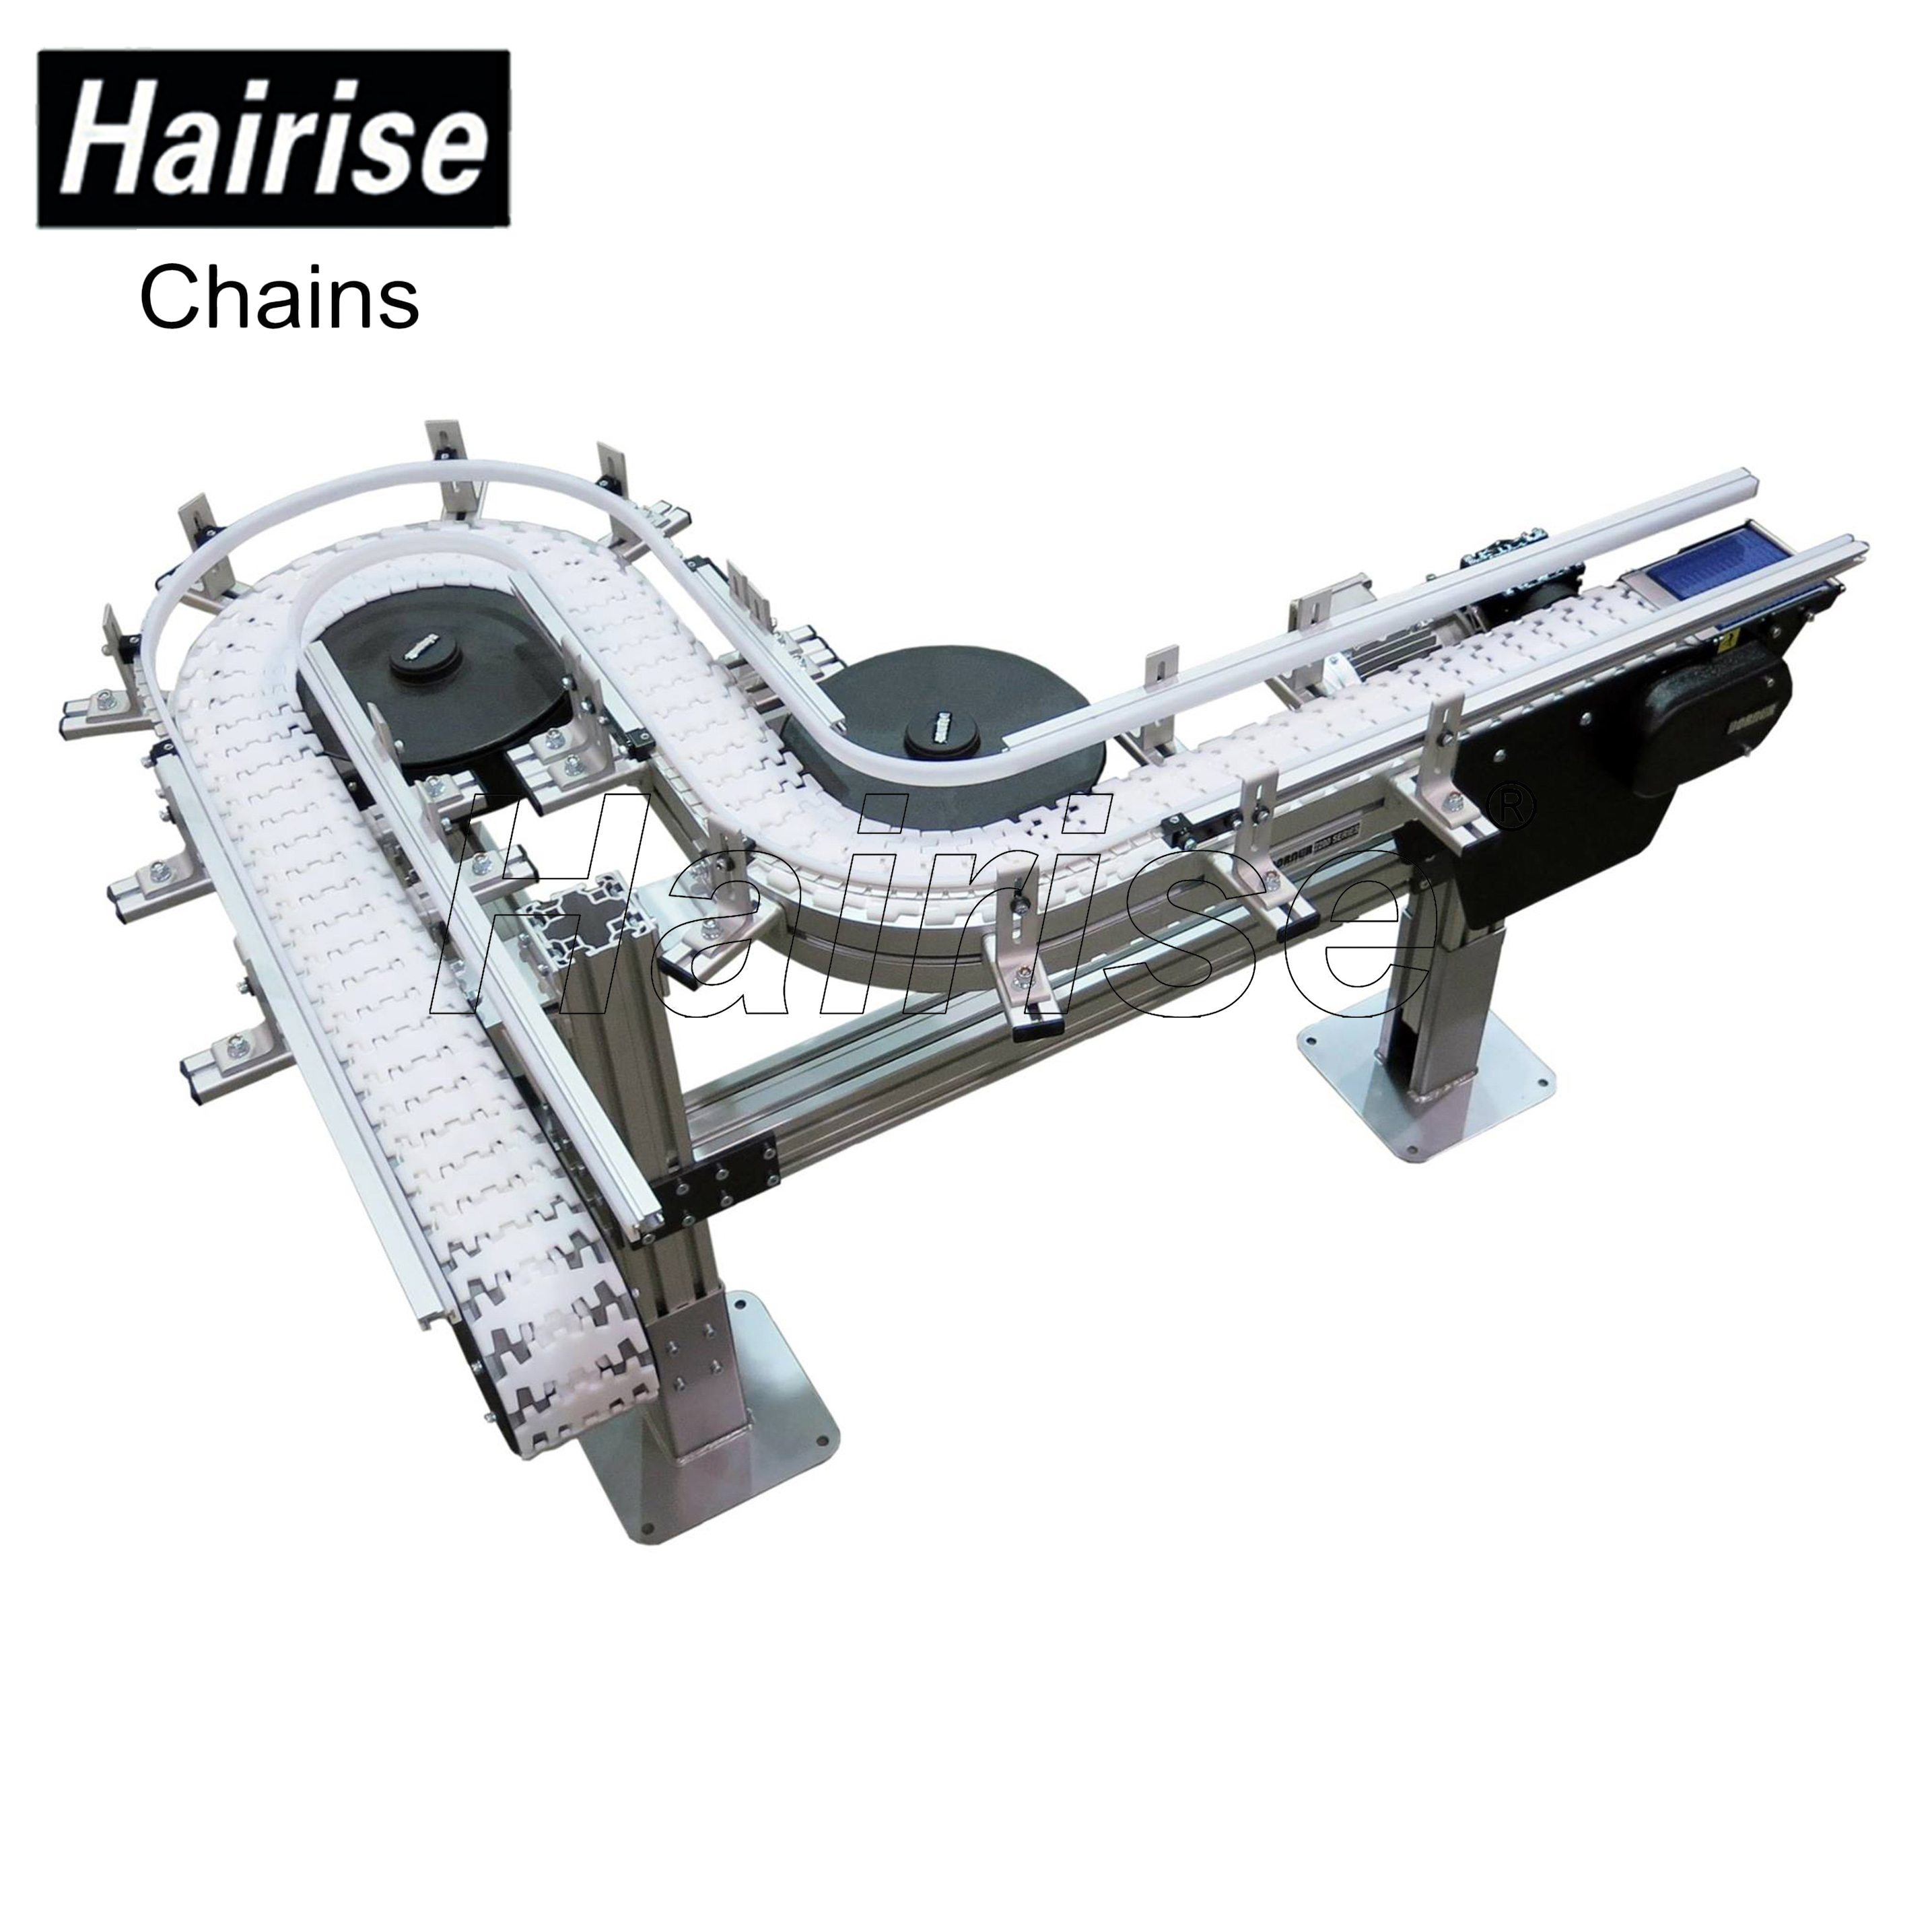 Hairise Curved Conveyors with Multiflex Chains Featured Image